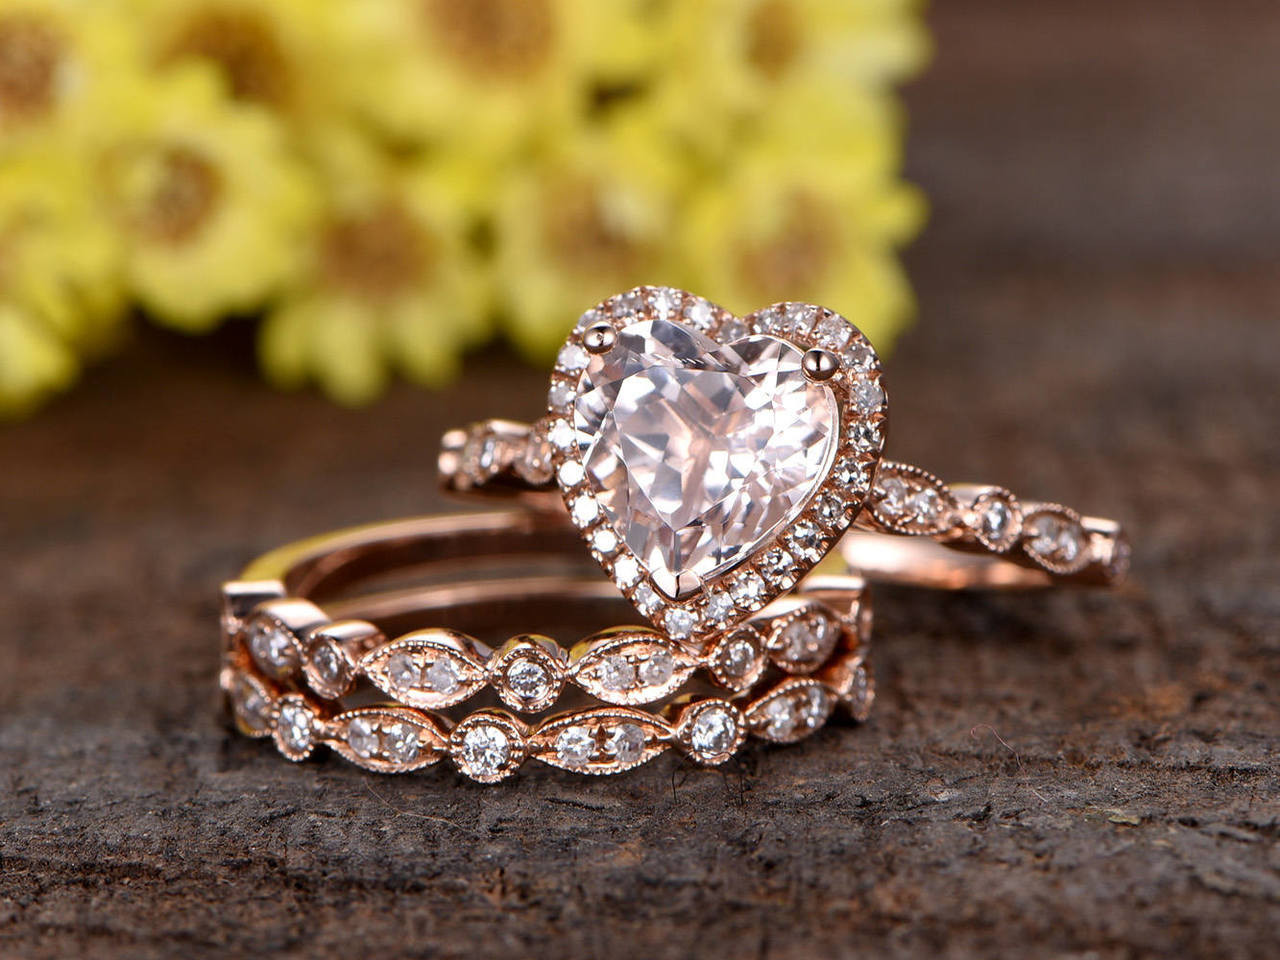 rings com products princess wedding ring pink opal dealzonlinedirect fire heart